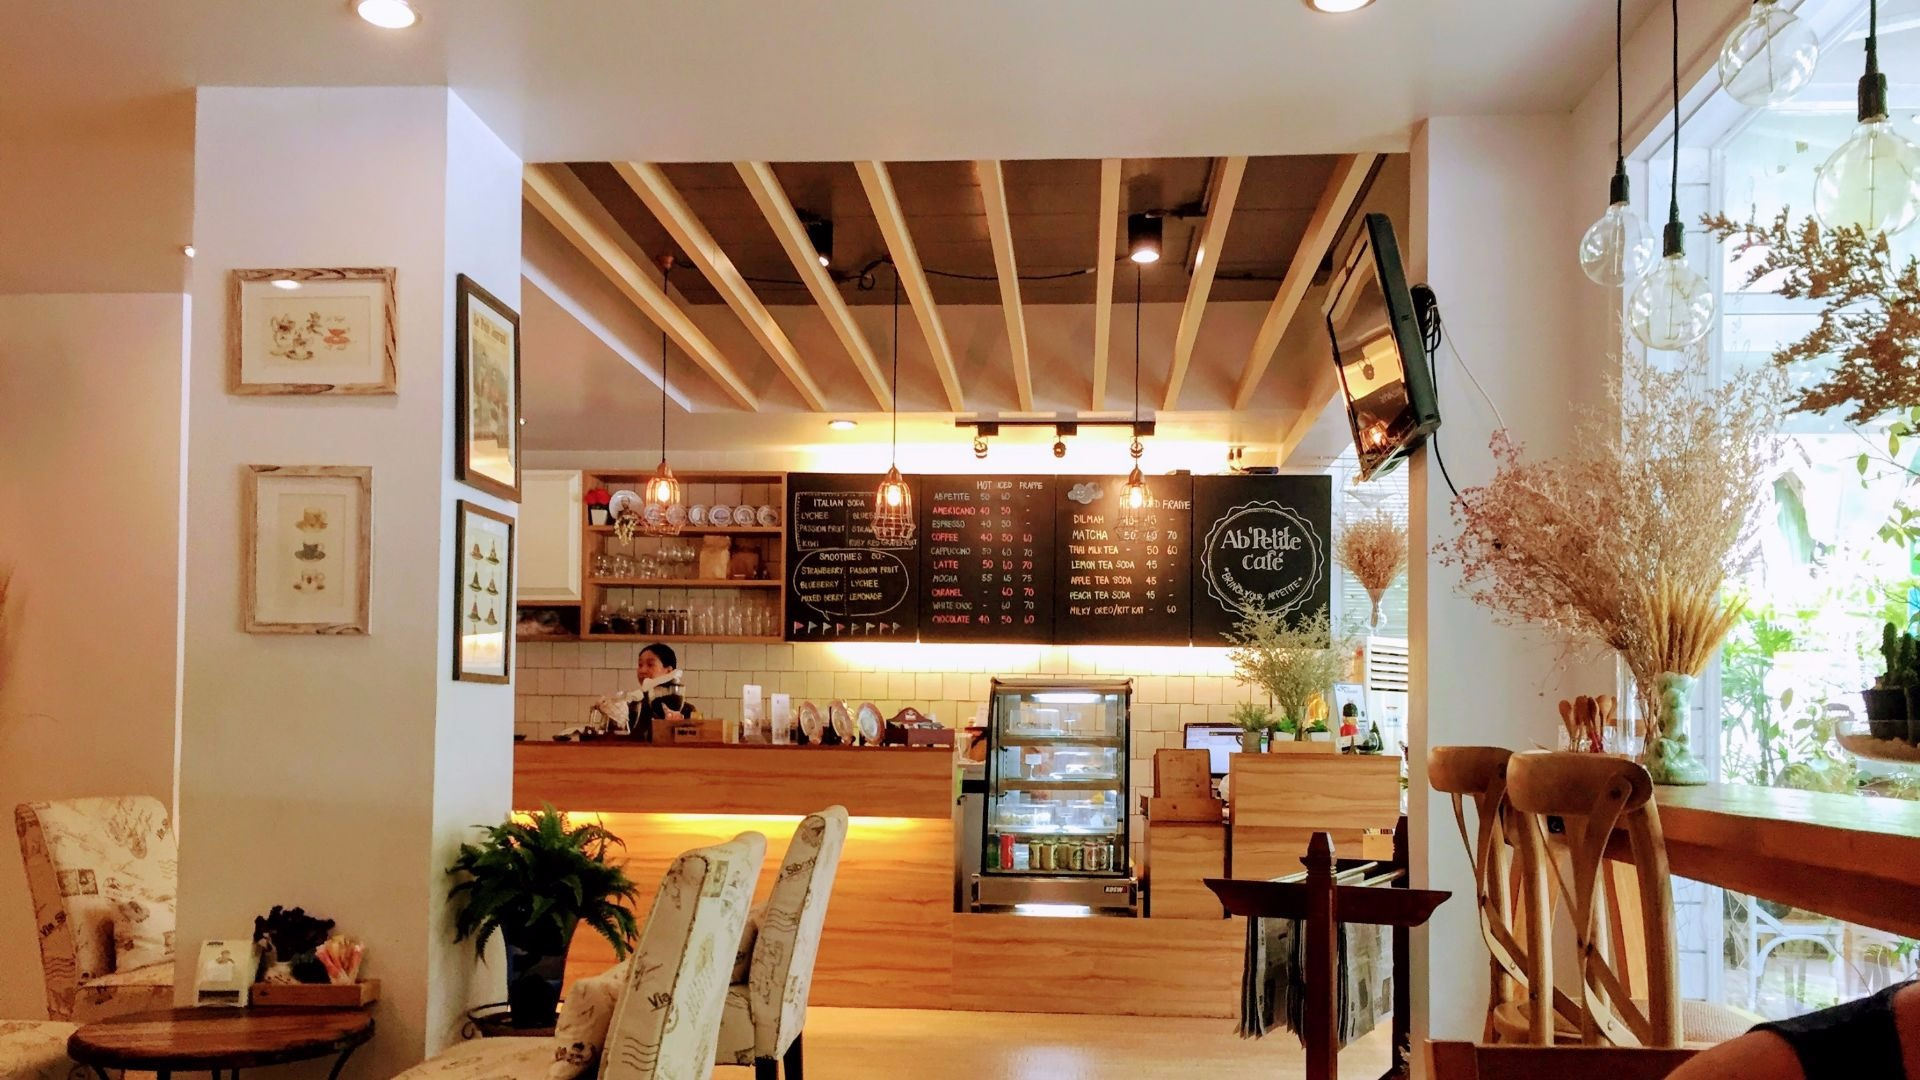 Best Cafes to Work from in Chiang Mai